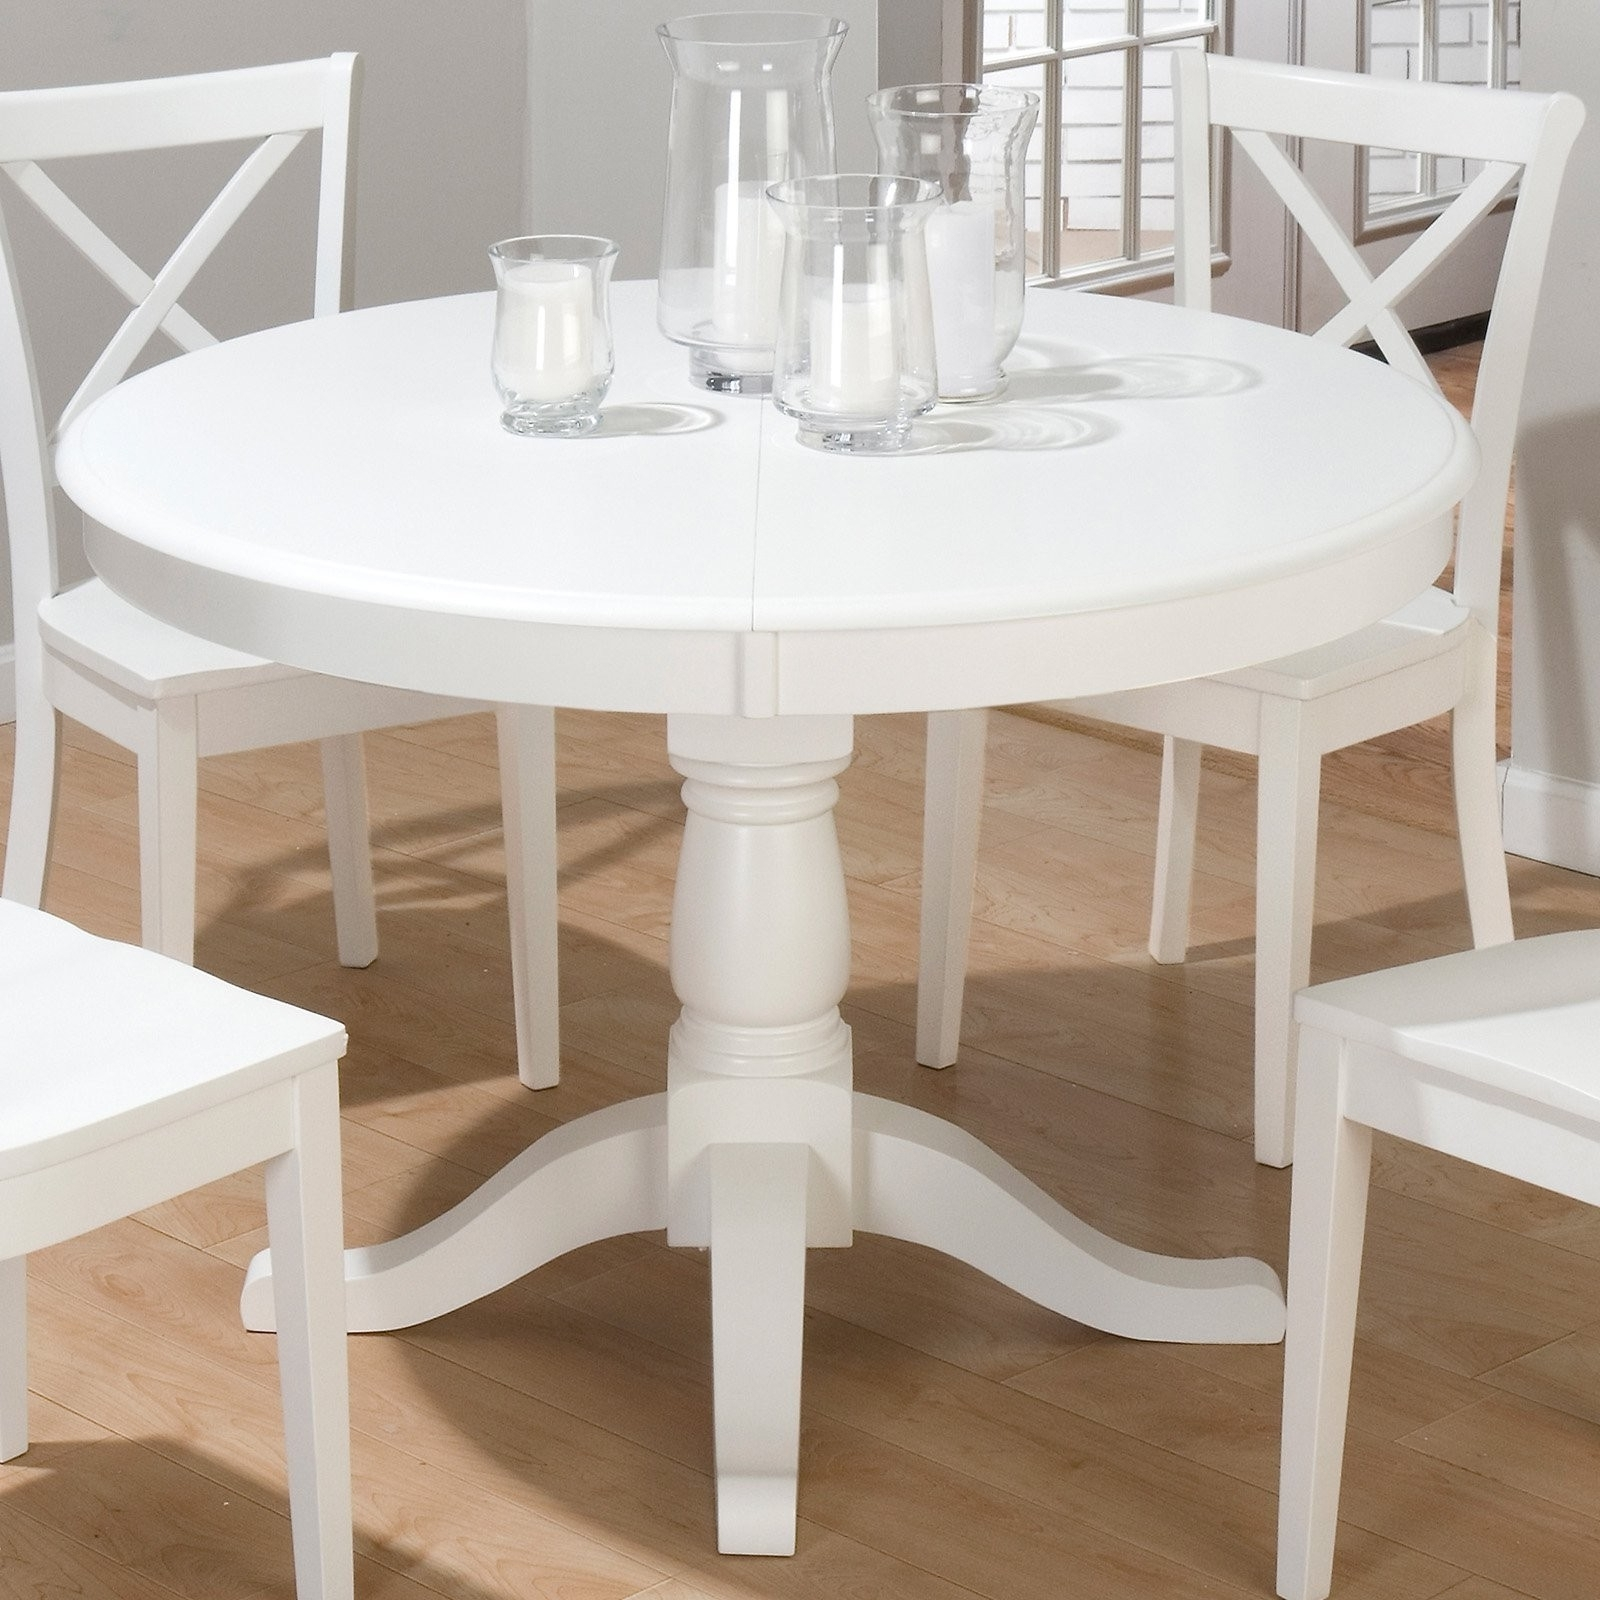 White Round Extendable Dining Tables regarding Newest Extendable Dining Tables For Small Spaces Inspirational White Round